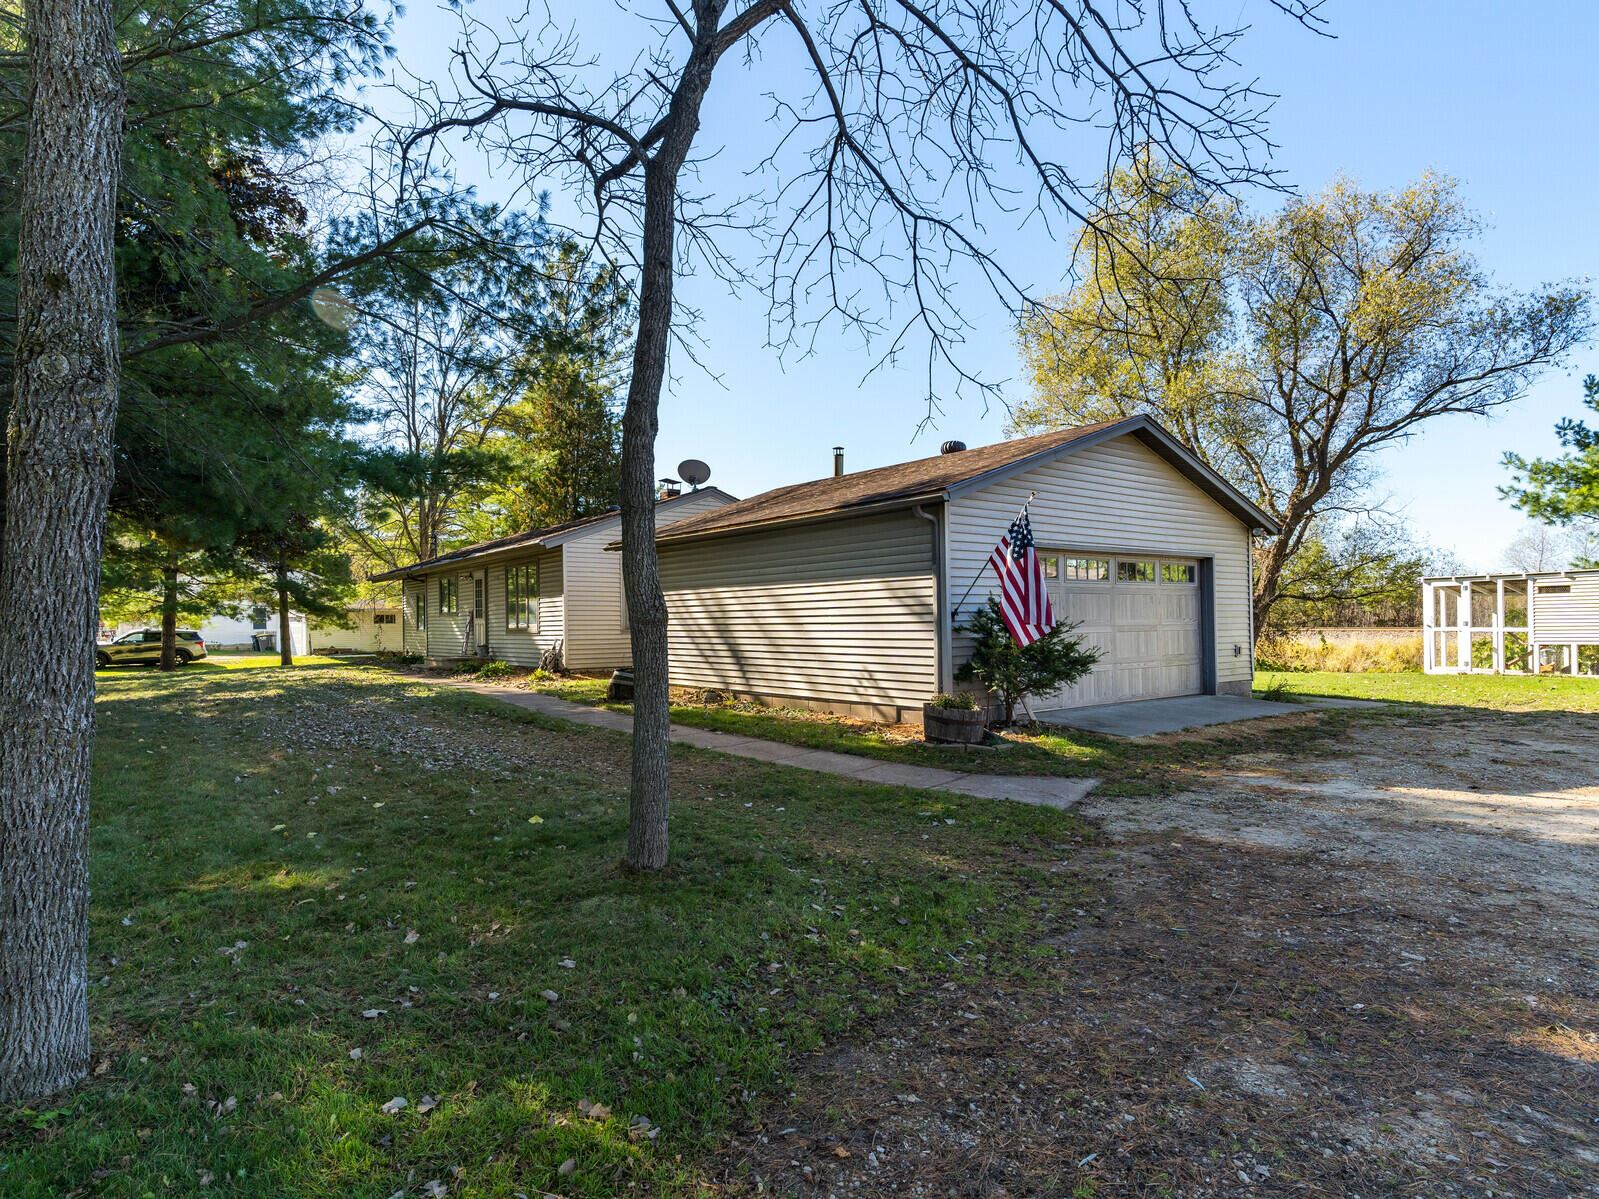 N119 State Road 35, Shelby, WI 54658 - MLS#: 1769486